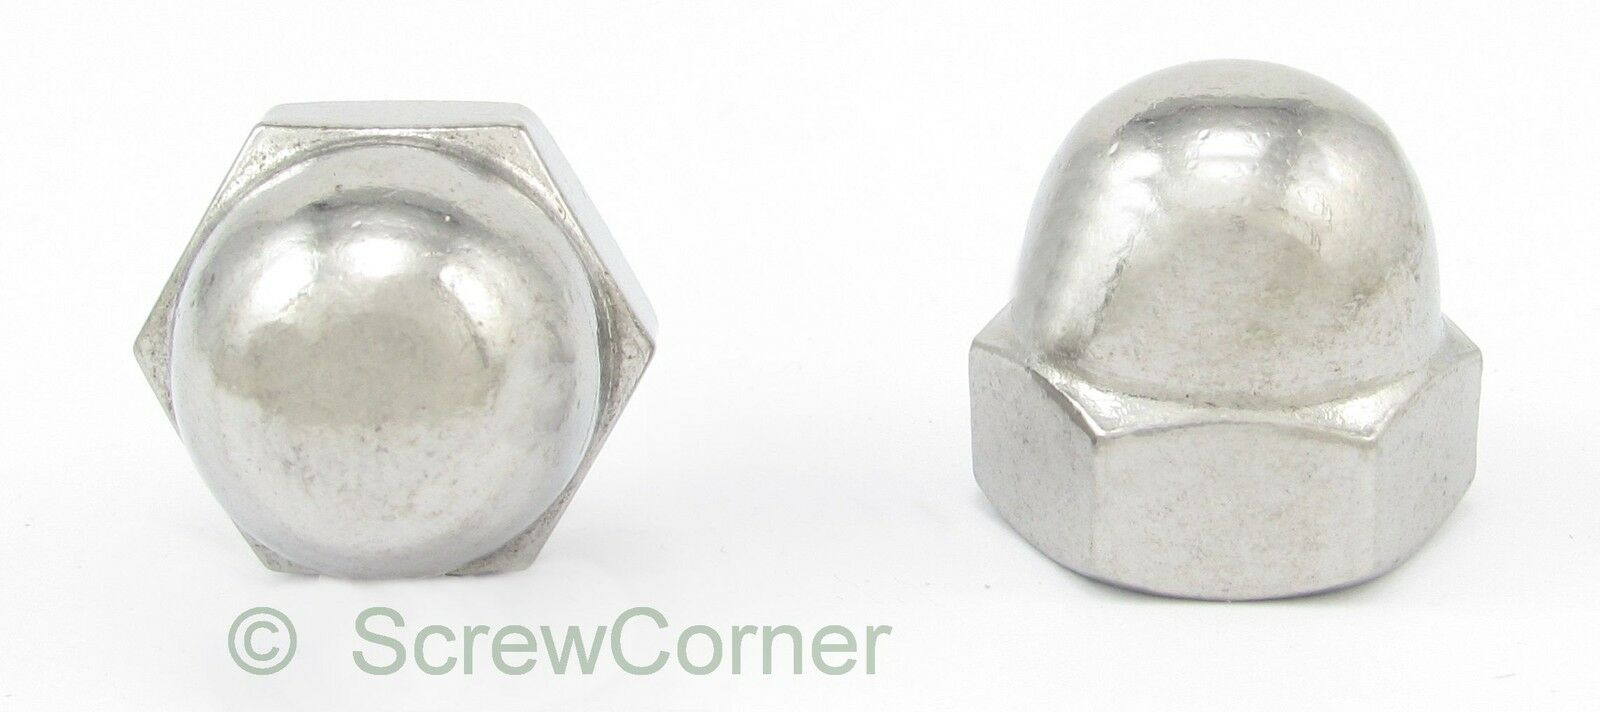 Hutmutter 1 2-20 UNF A2 Edelstahl - Acorn (Dome) Nut 1 2-20 UNF A2 Stainless